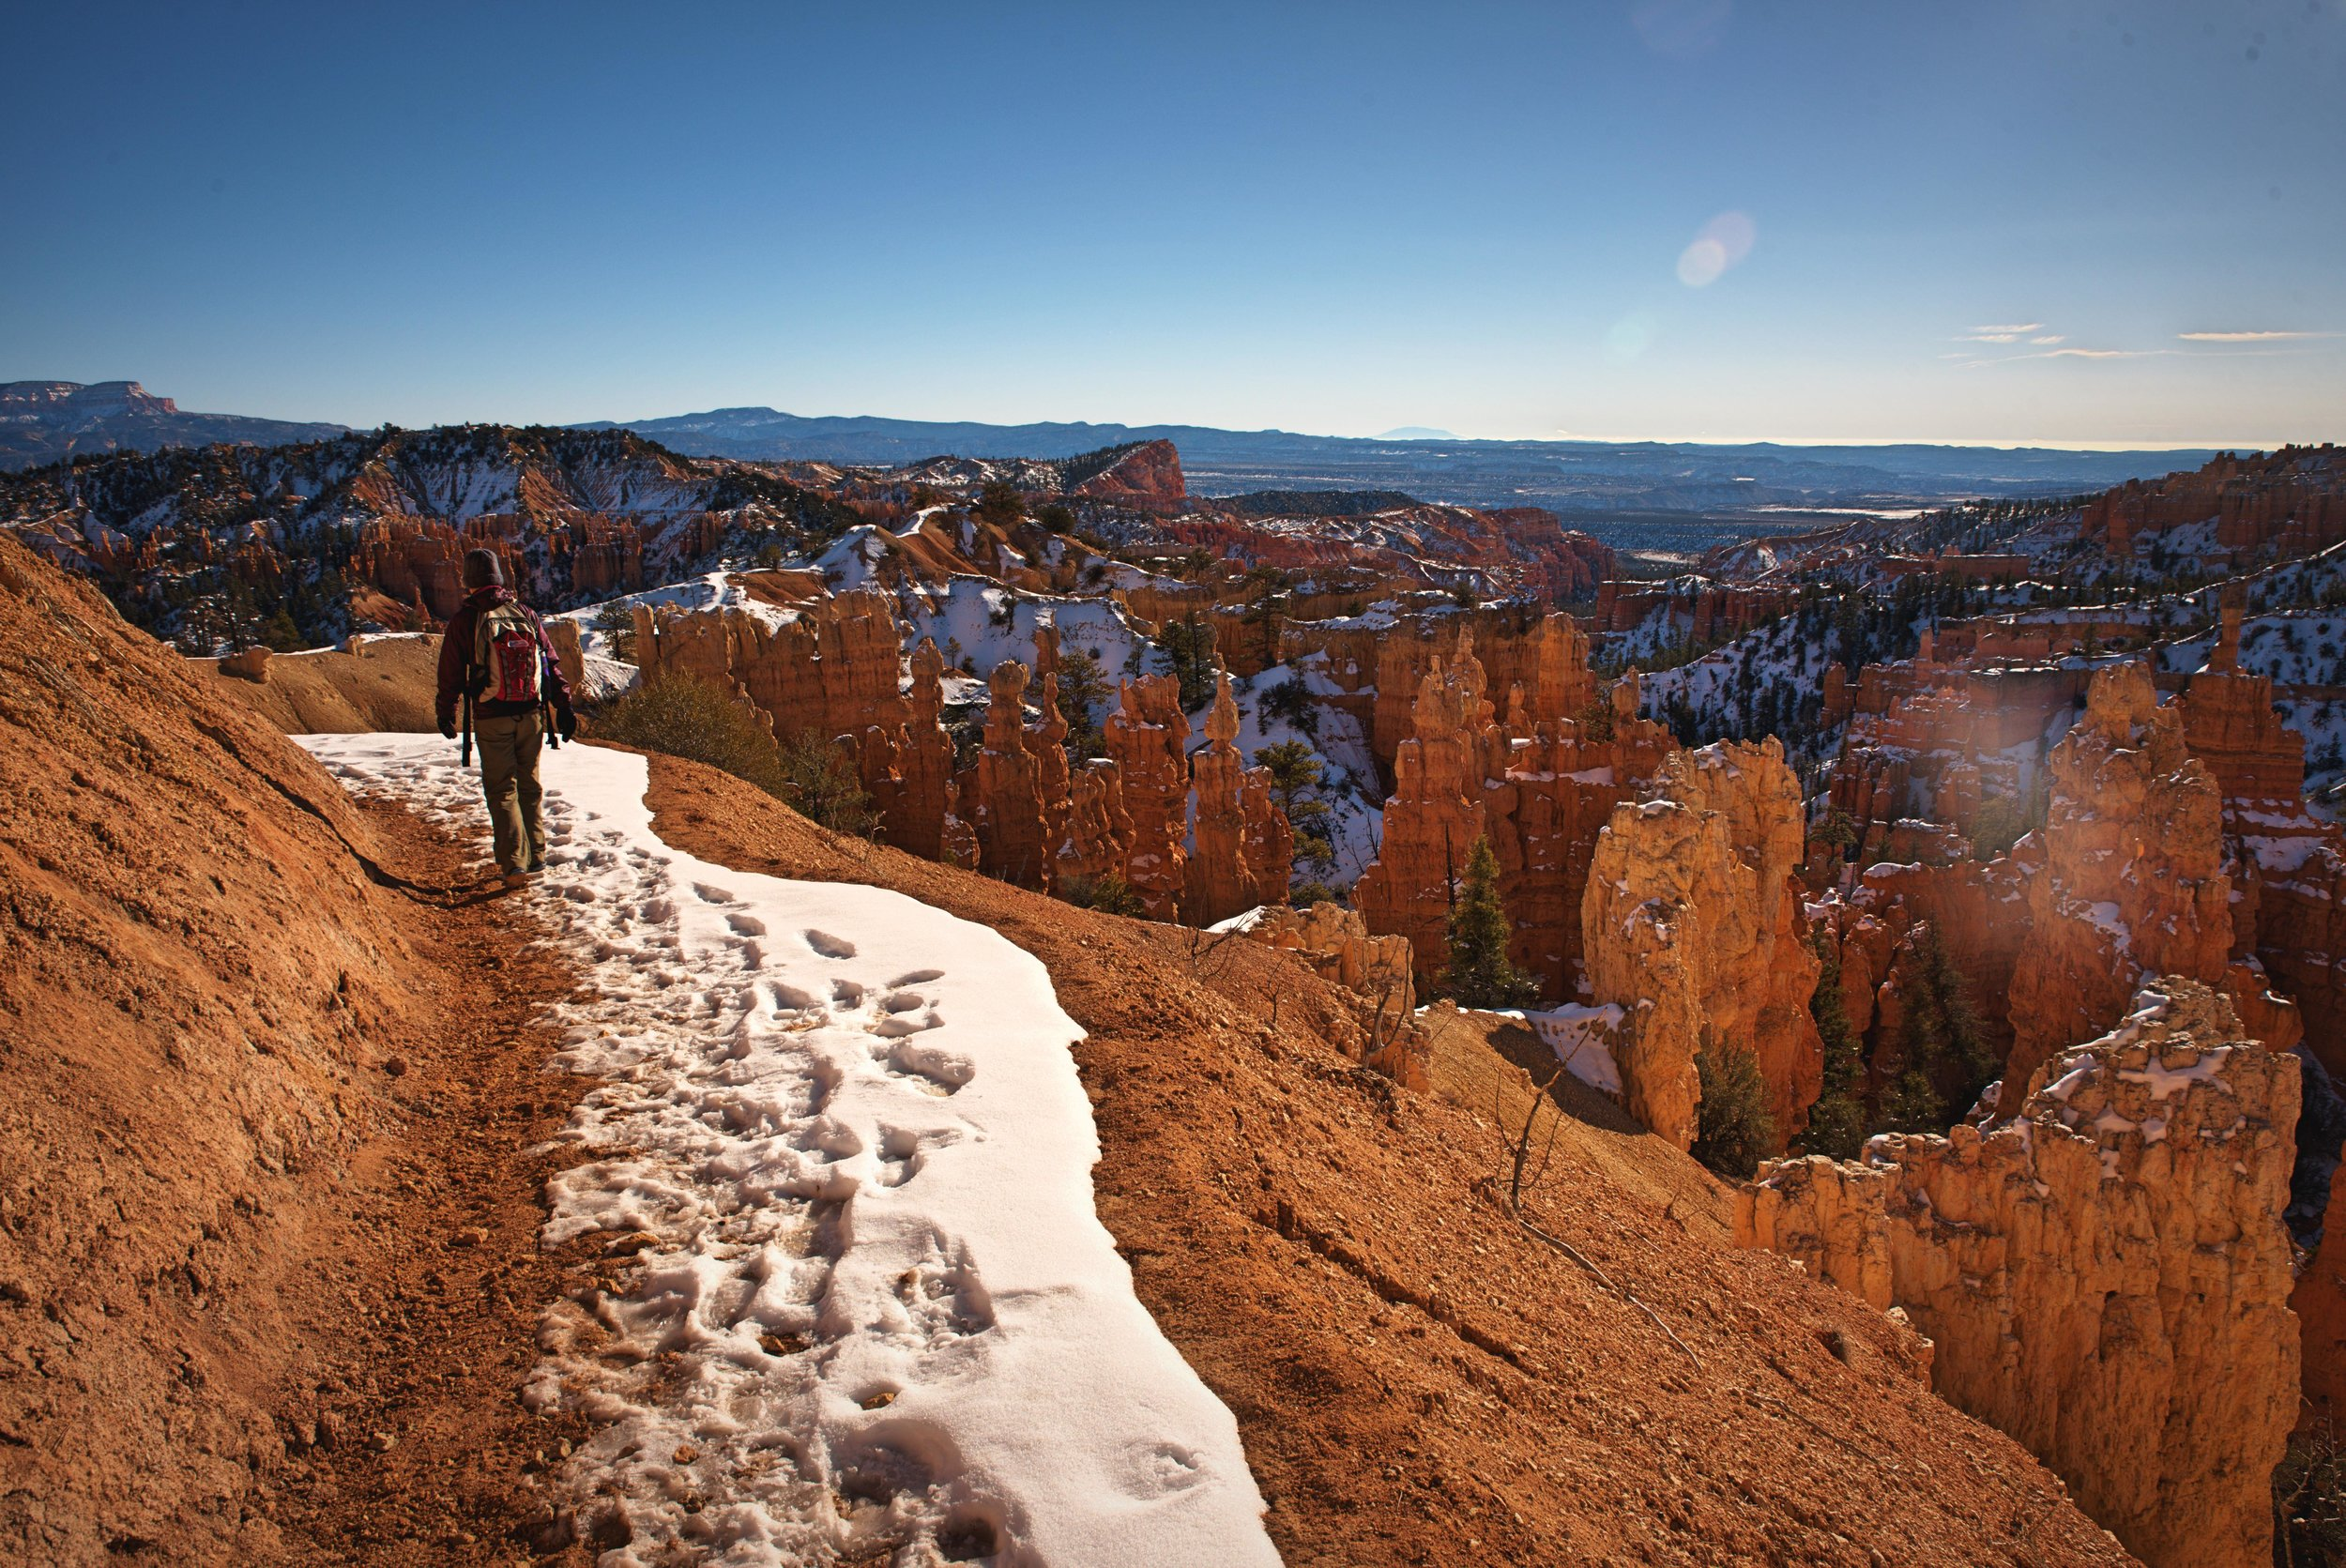 You descend into Bryce Canyon at Fairyland Point. This portion of the trail is a ledge with a sloped drop off next to it.